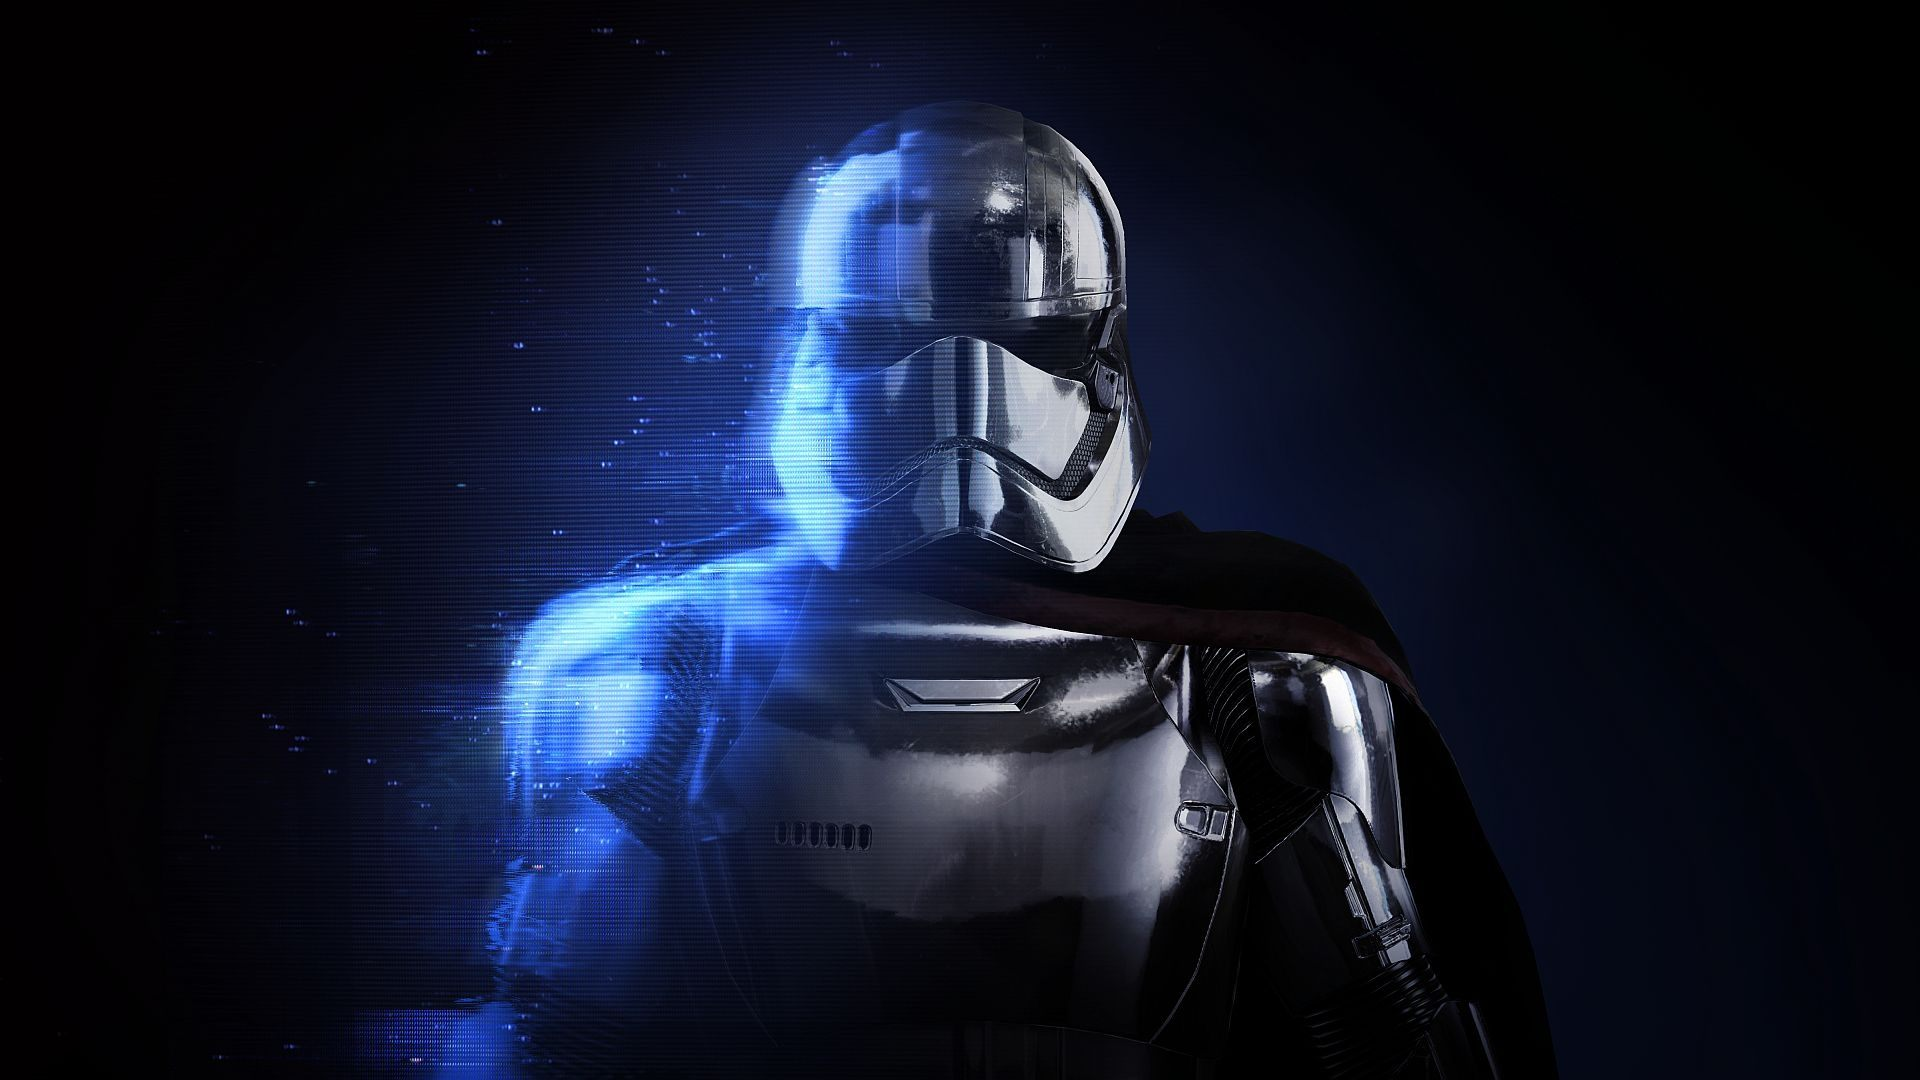 Captain Phasma Star Wars Battlefront II456097482 - Captain Phasma Star Wars Battlefront II - Wars, Tracer, Star, Phasma, Captain, Battlefront